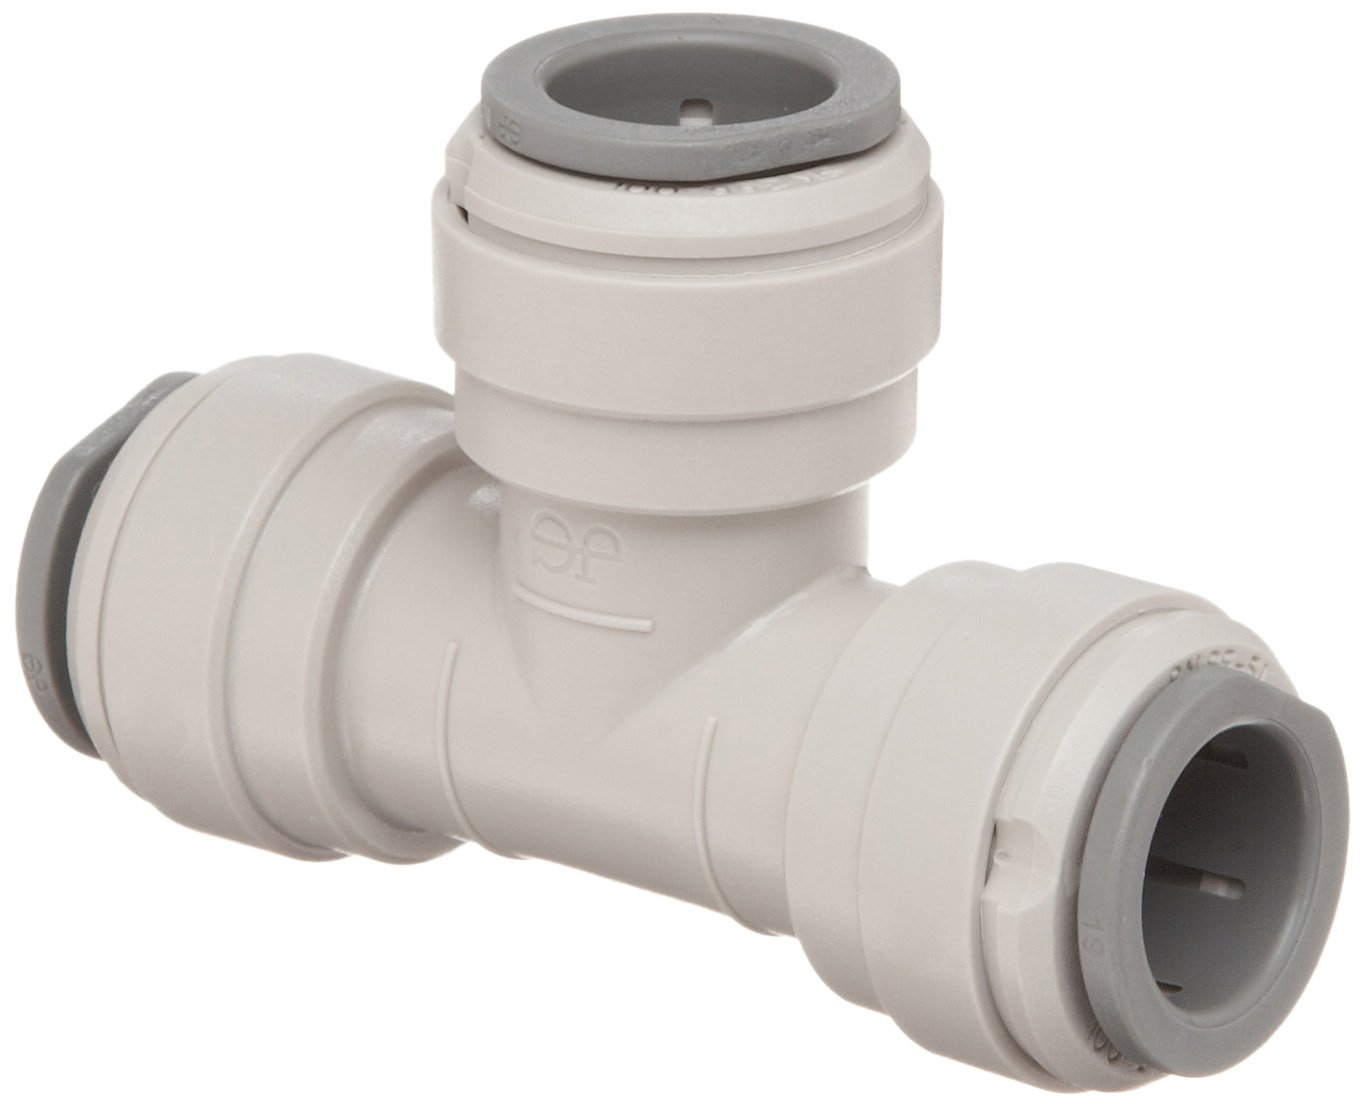 John Guest Acetal Copolymer Tube Fitting, Union Tee, 1/4'' Tube OD (Pack of 10)